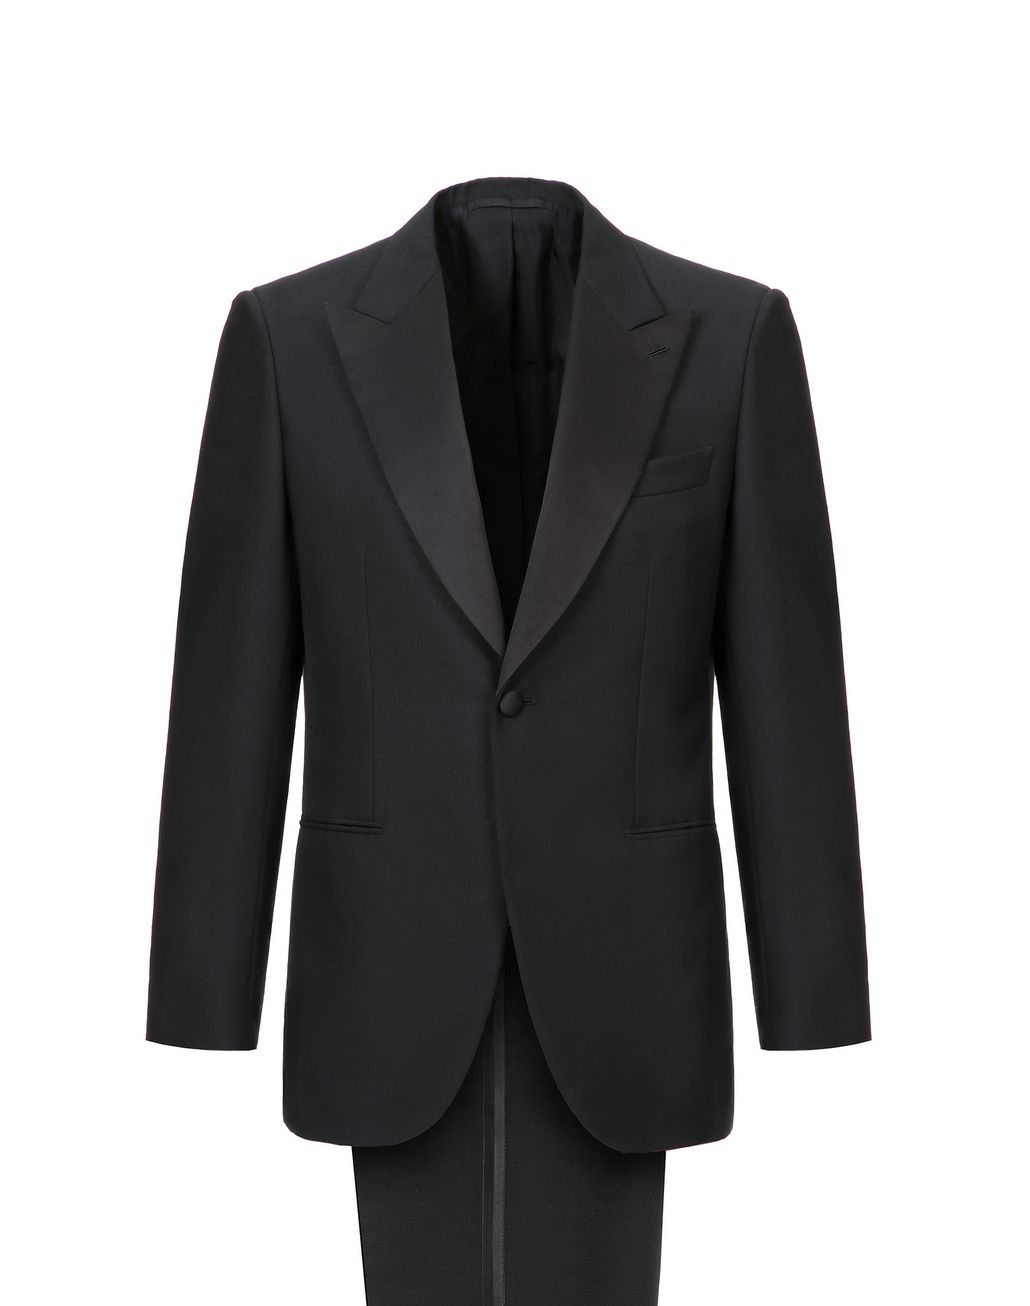 BRIONI Black Parioli Tuxedo Suit  Suits & Jackets Man f